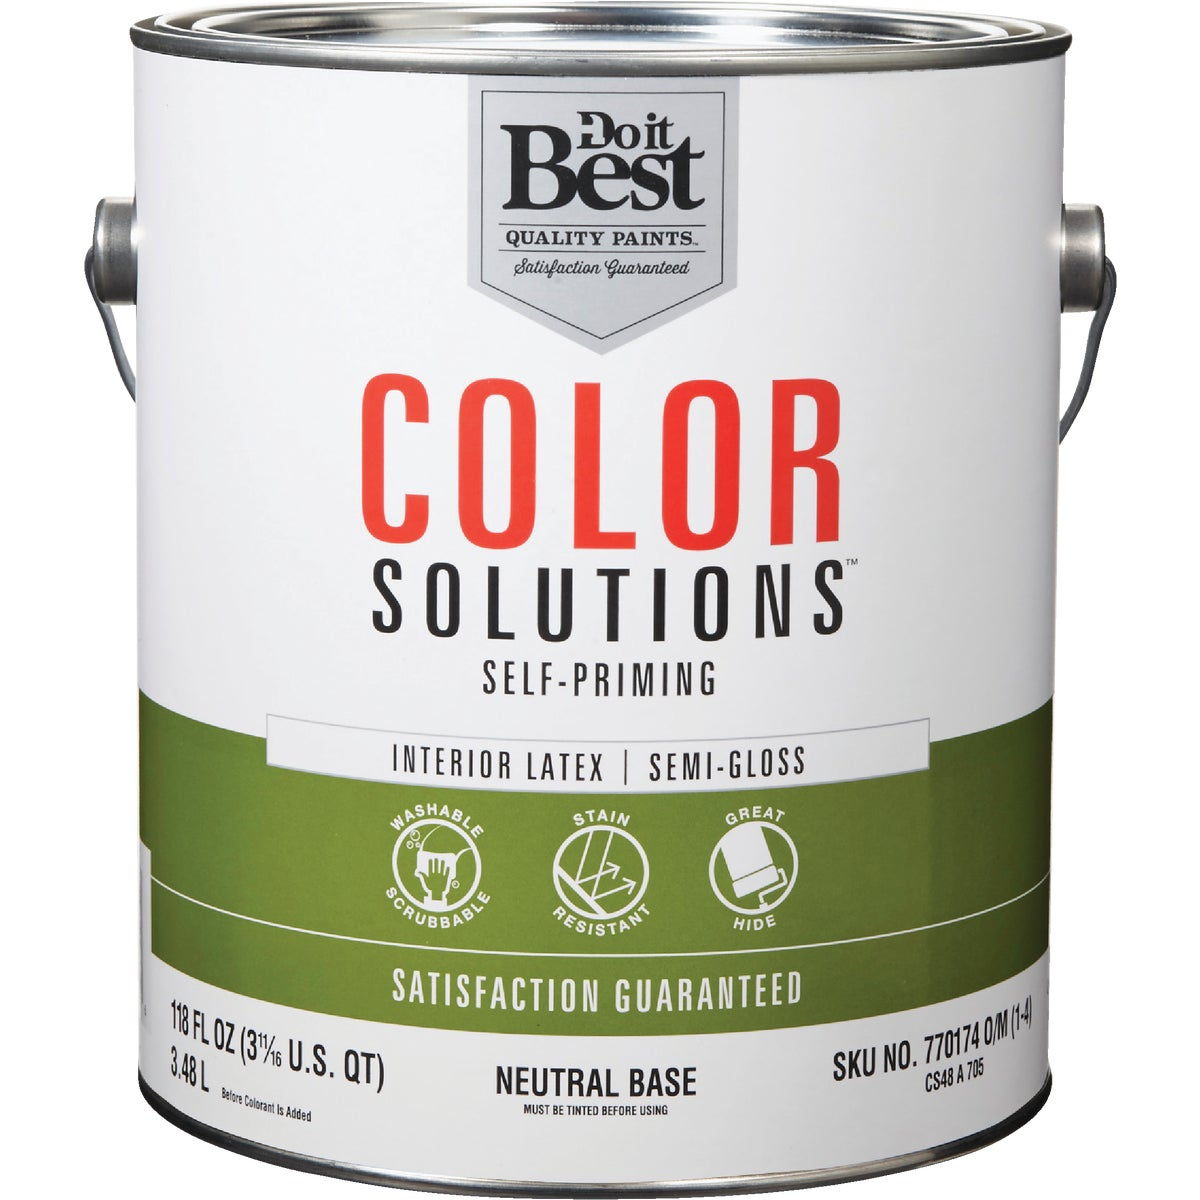 INT S/G NEUTRAL BS PAINT - CS48A0705-16 by Do it Best